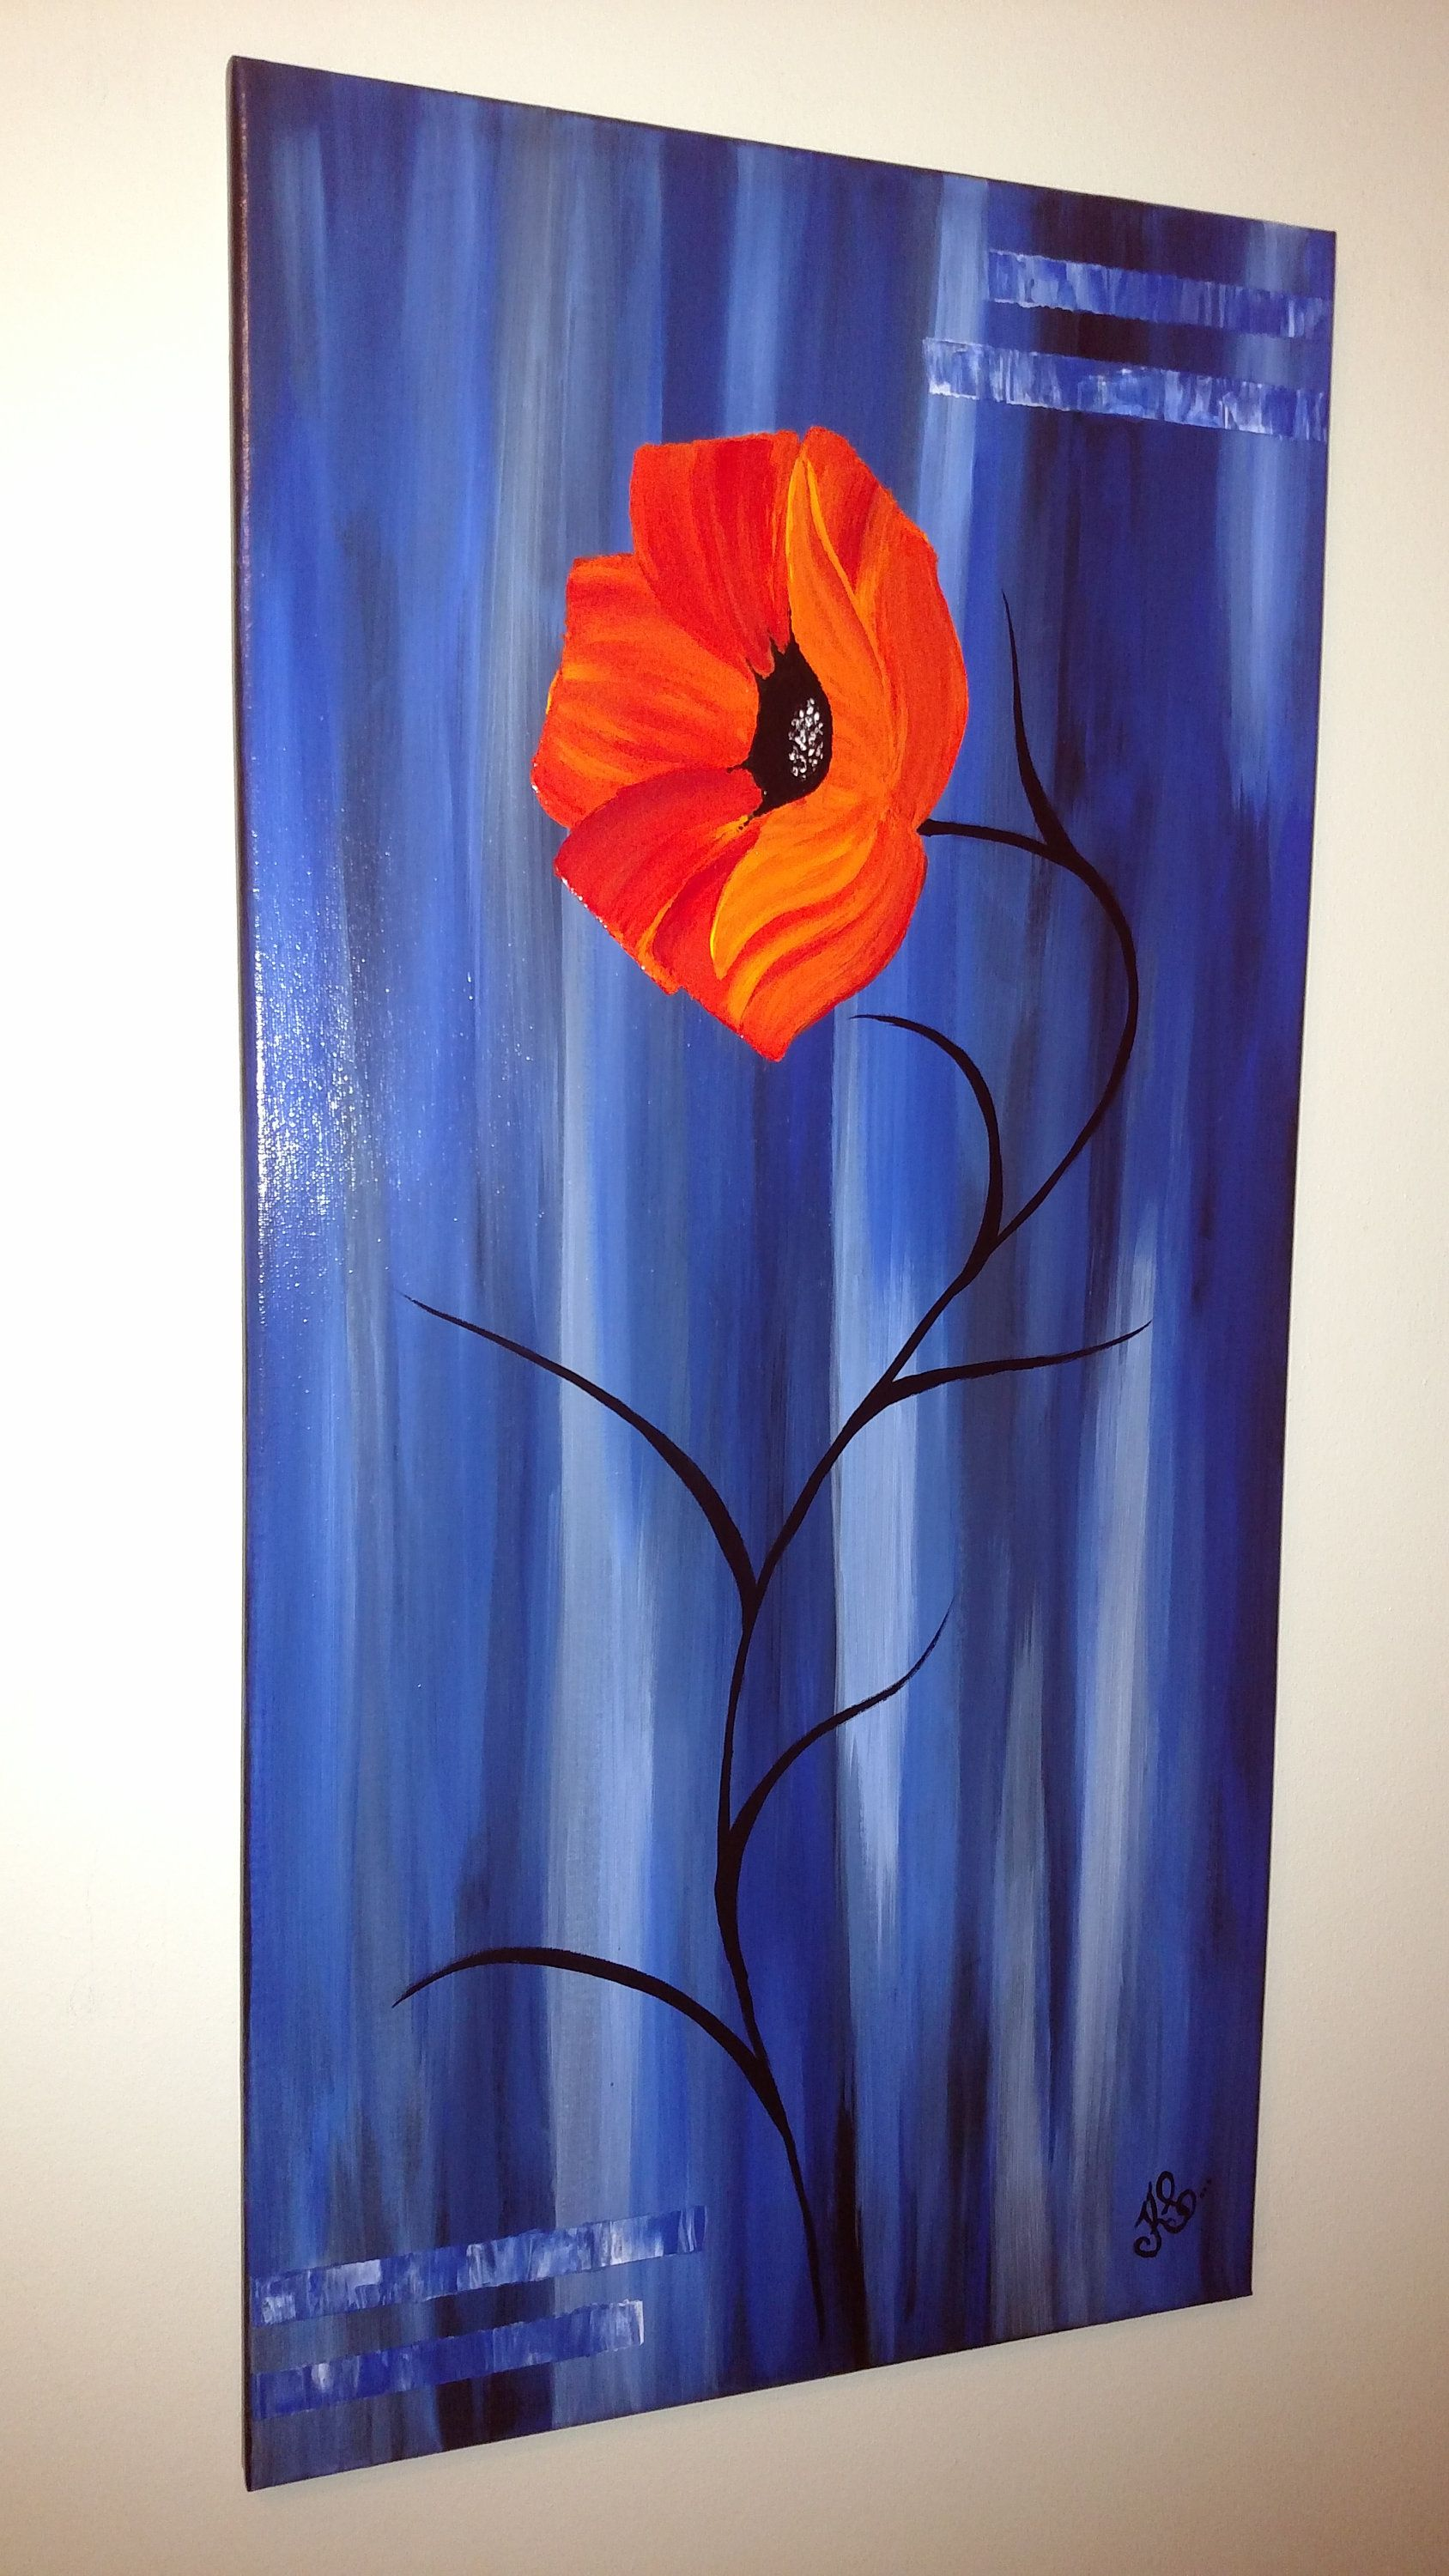 Abstract Original Acrylic Painting, Wall Art, Flower Painting, Floral Decor,